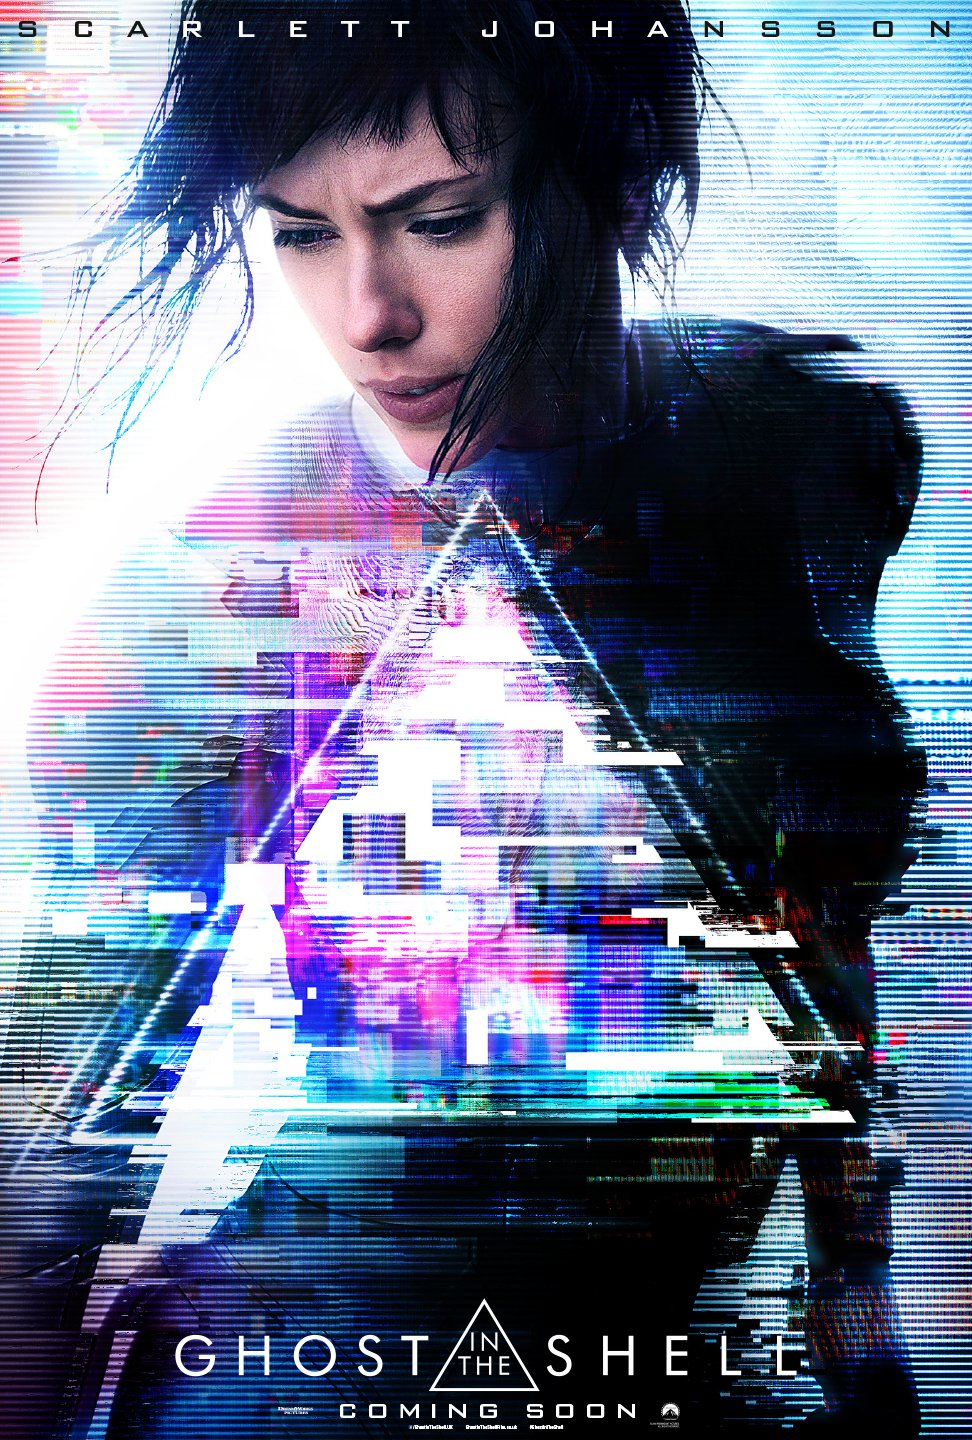 Ghost in the Shell UK poster